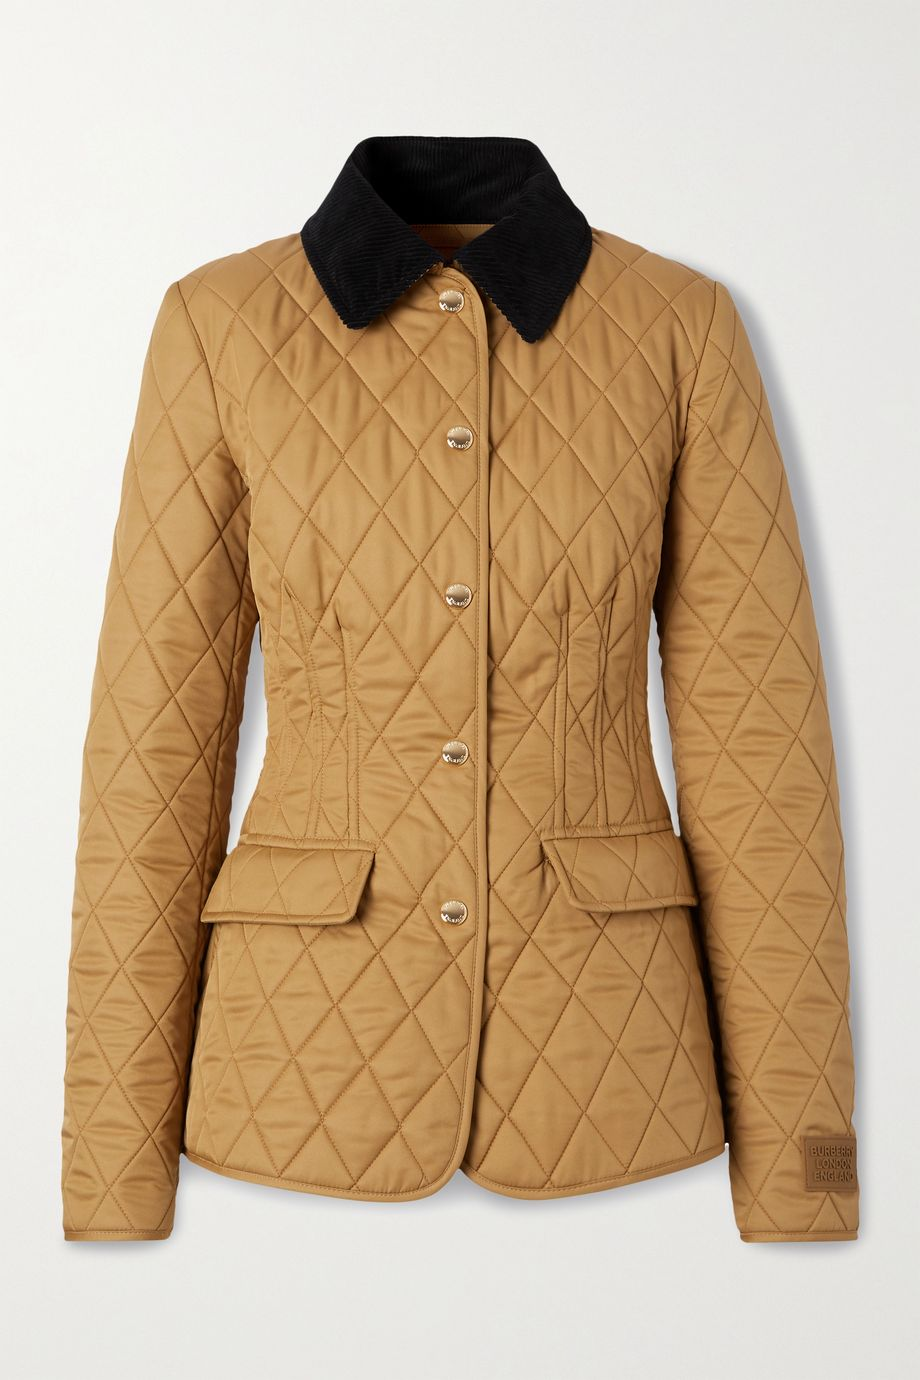 Burberry Corduroy-trimmed quilted twill jacket